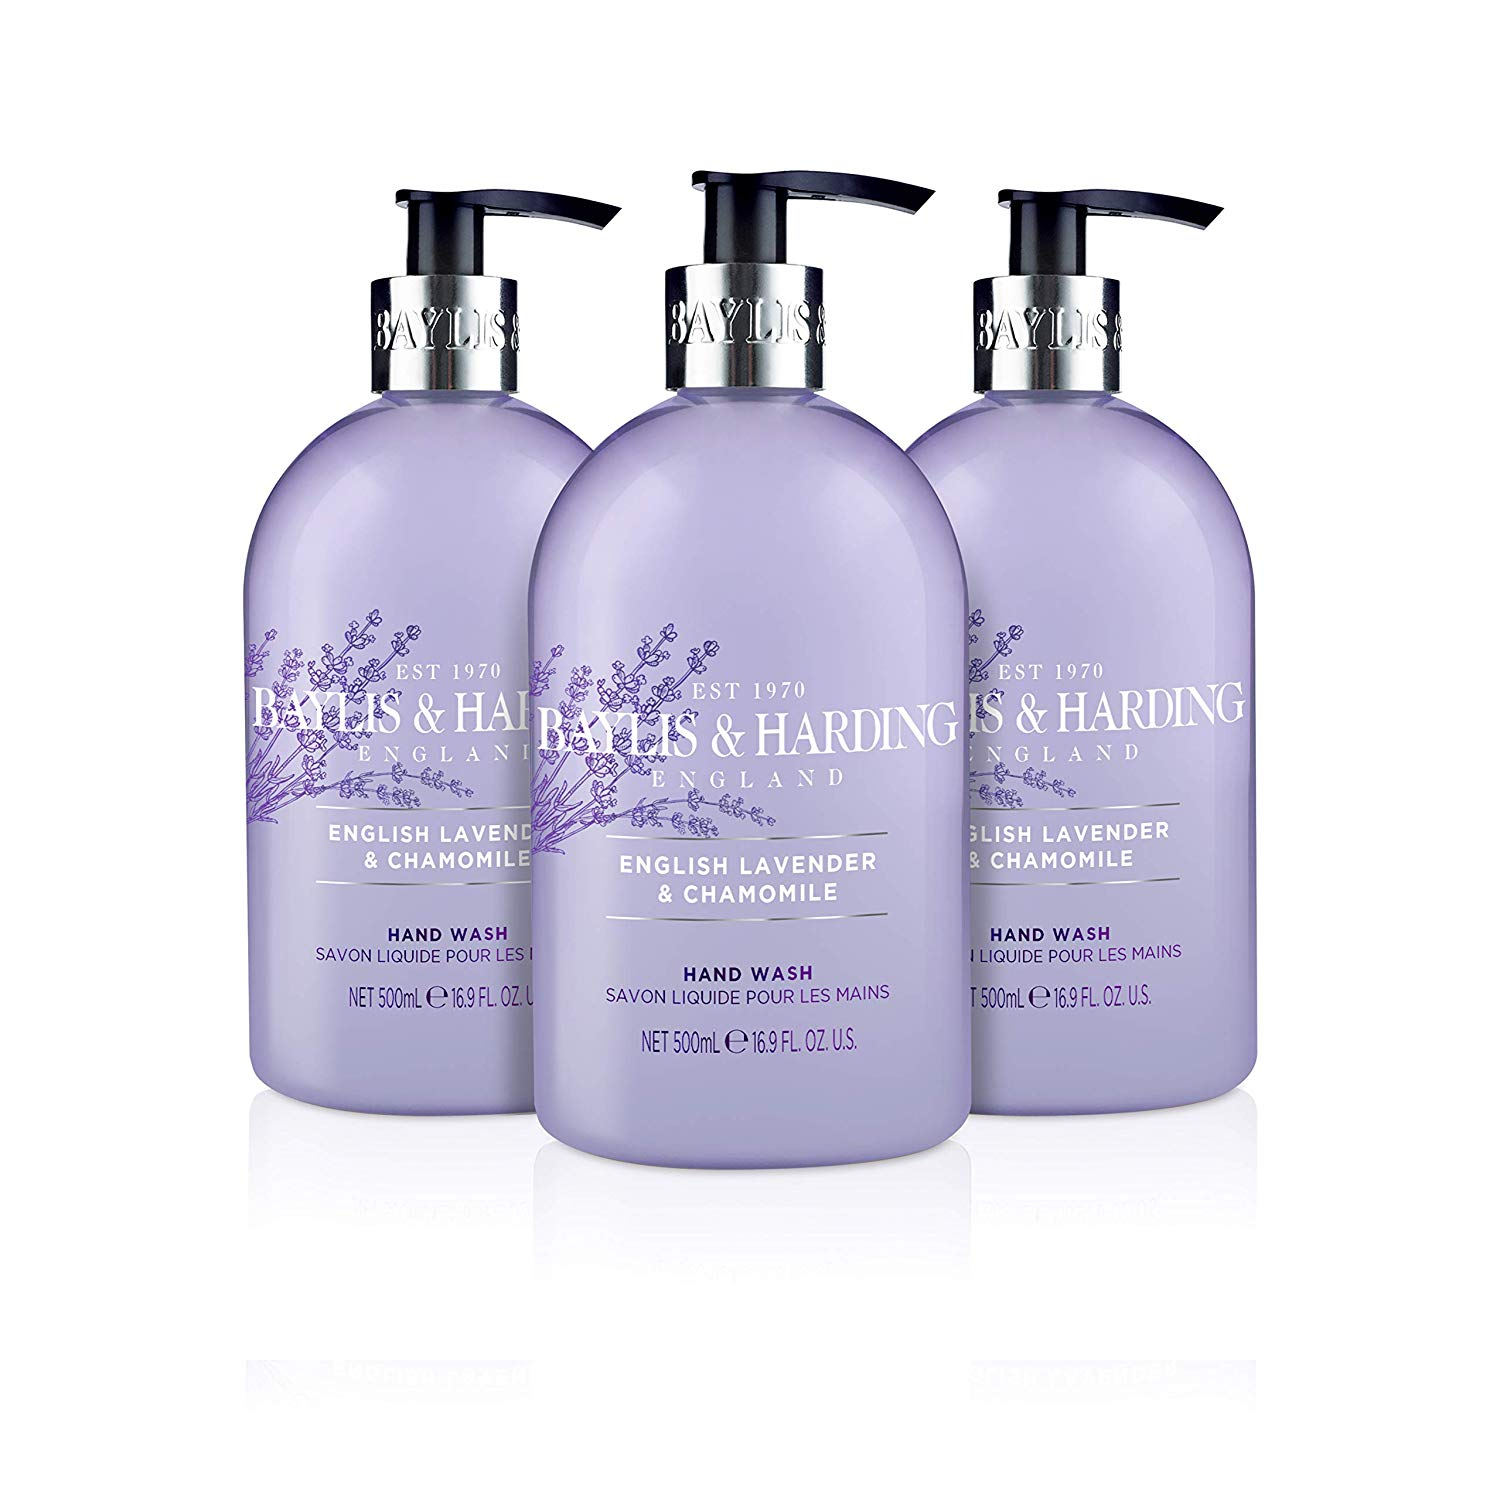 Baylis & Harding English Lavender and Chamomile Hand Wash, 500 ml, Pack of 3 Now for £4.5 at Amazon